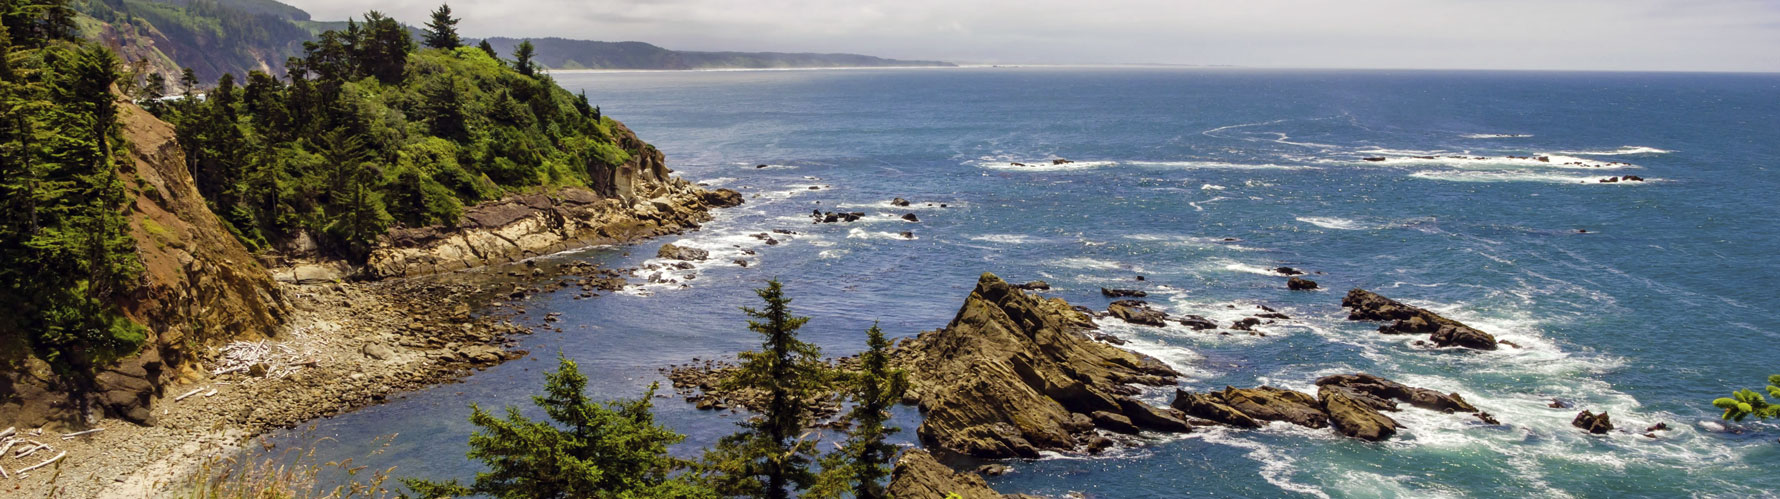 Picture of the Oregon coast